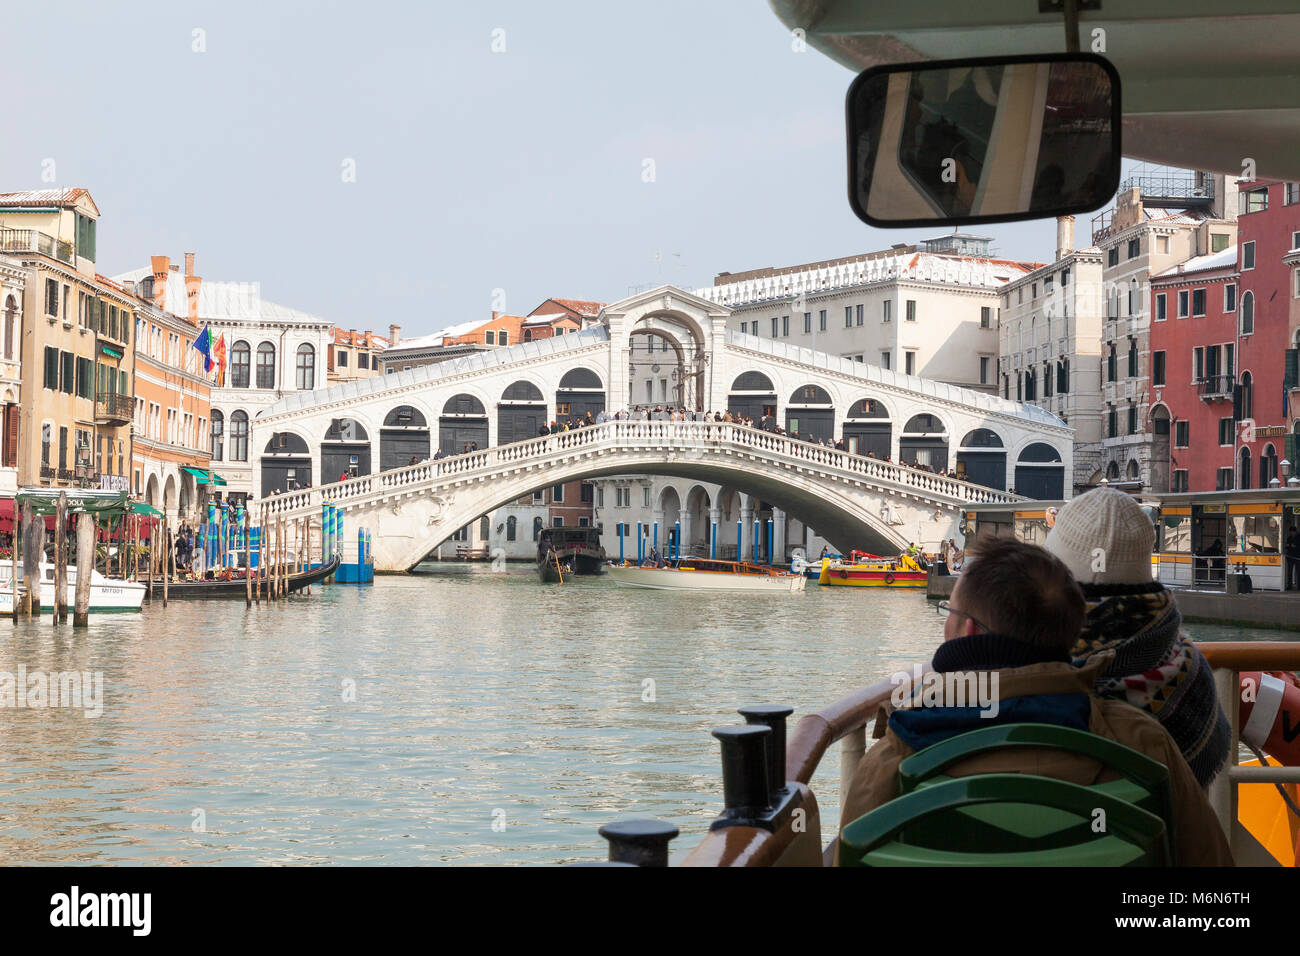 Tourists on a Vaporetto travelling up the Grand Canal, Rialto Bridge, Venice, Italy in winter with snow on the roofs, - Stock Image